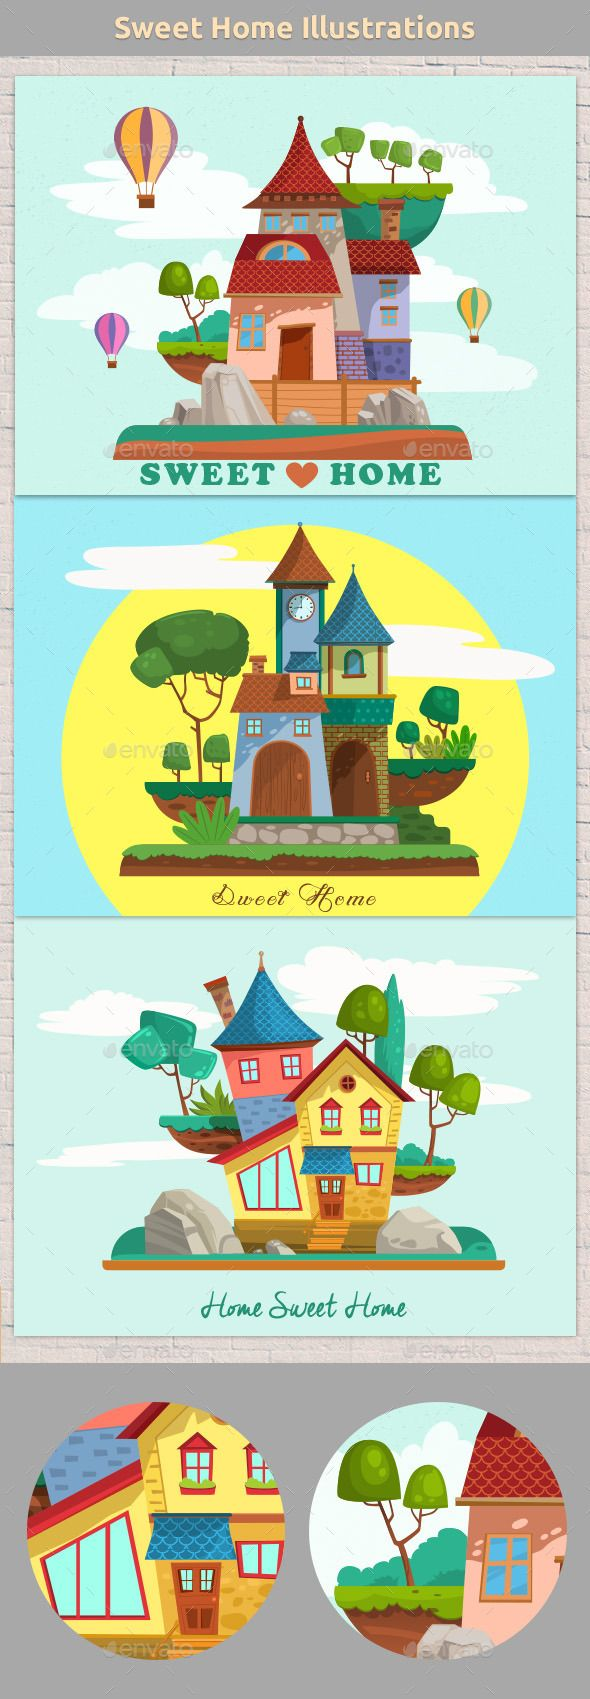 Sweet Home Illustrations